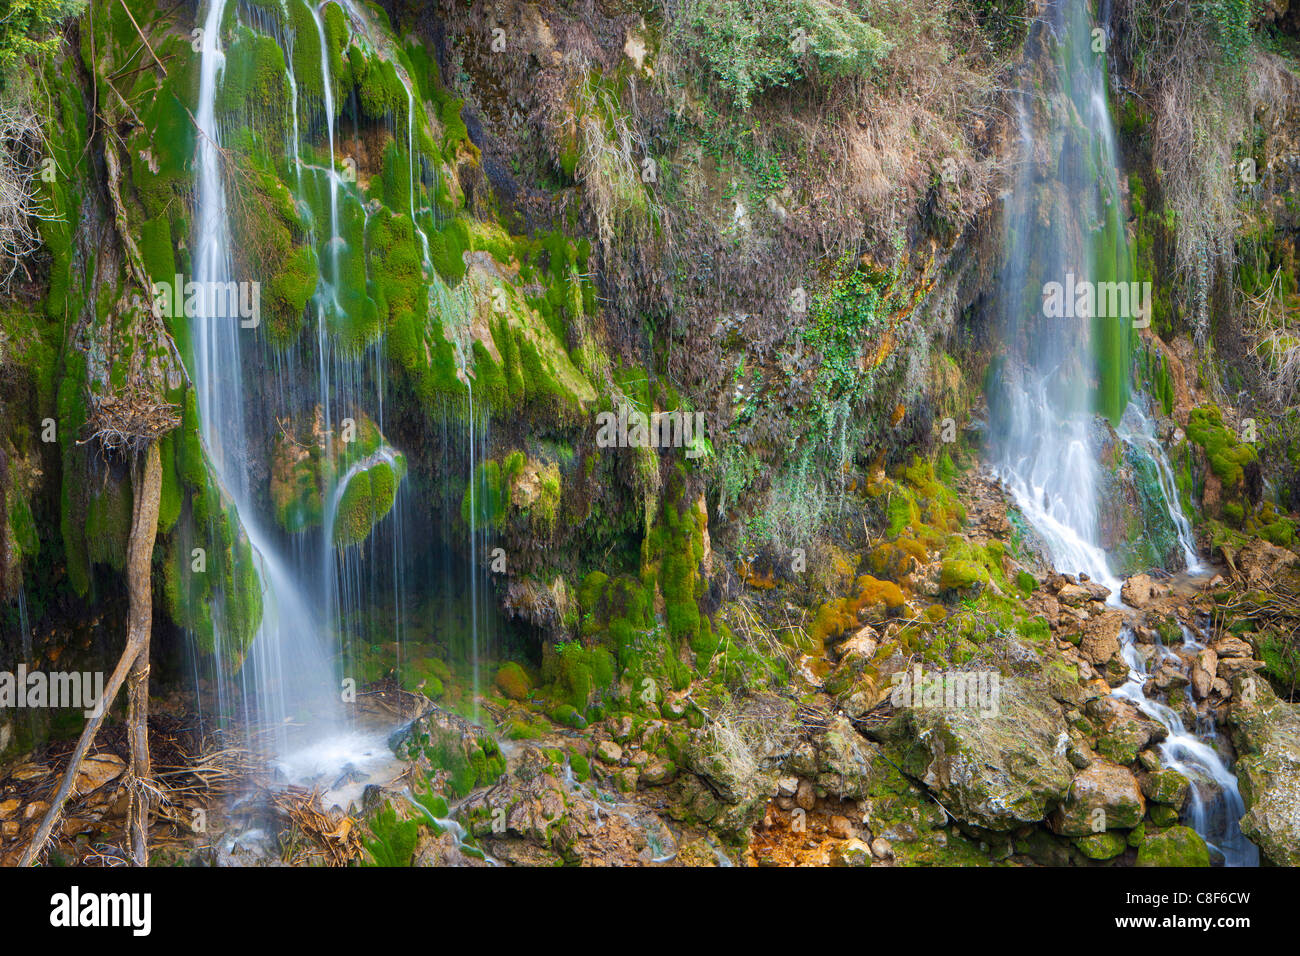 Saut du Loup, France, Europe, Provence, Alpes-Maritimes, brook, waterfall, cascade, rock, cliff, tuff stone, moss - Stock Image